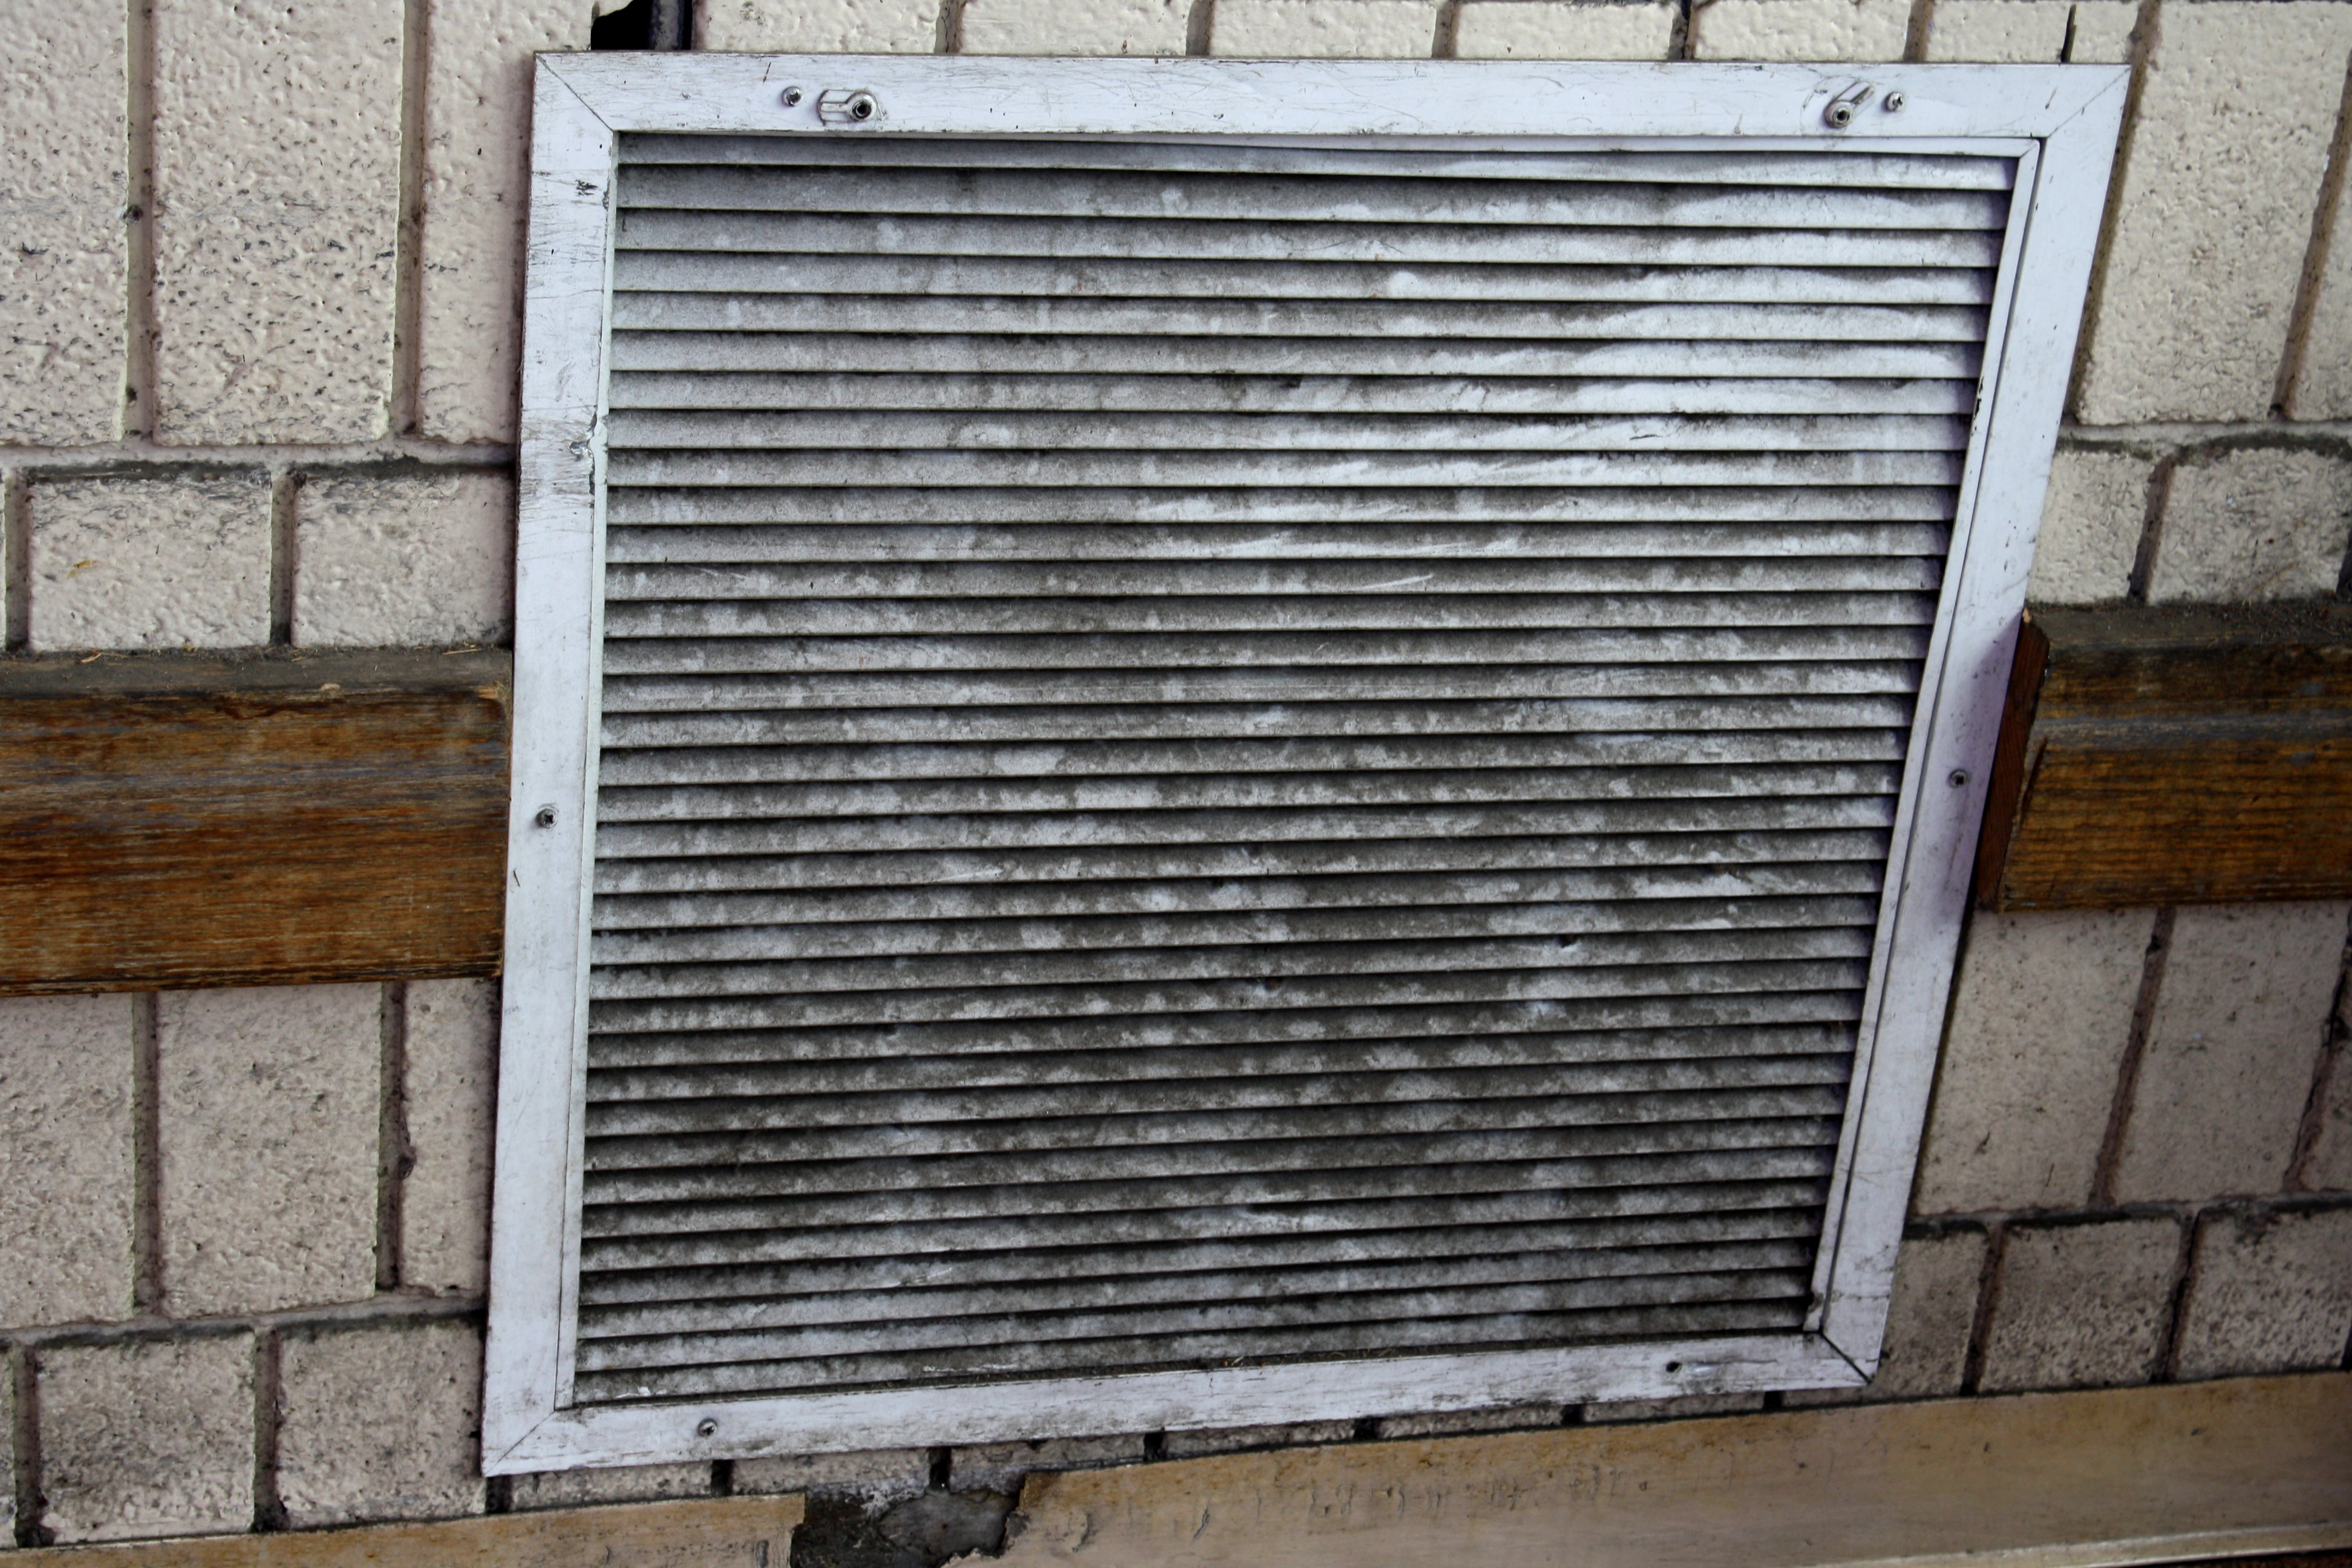 Dirty Ventilation Duct Cover Picture.